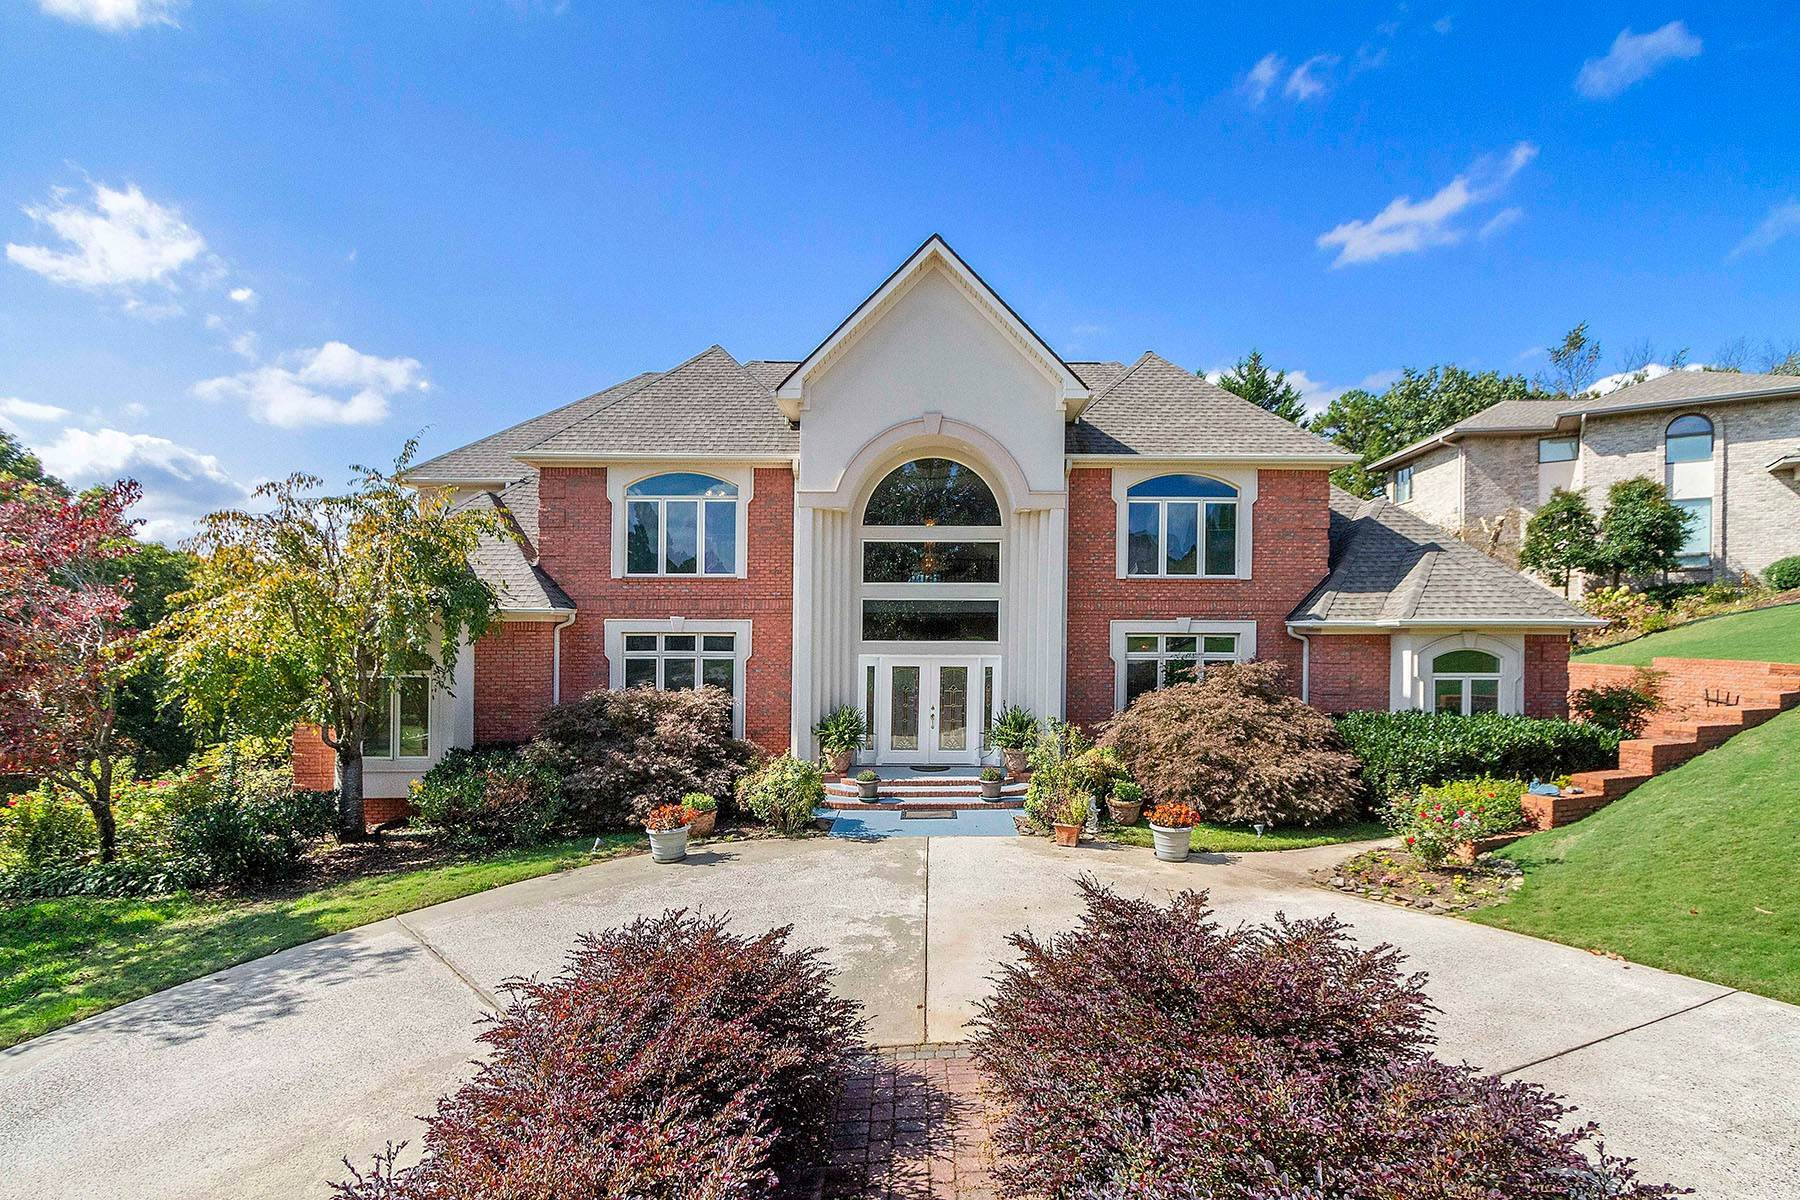 Single Family Homes for Sale at Stunning Neo-Colonial Home 7537 Tee Way Circle Chattanooga, Tennessee 37416 United States